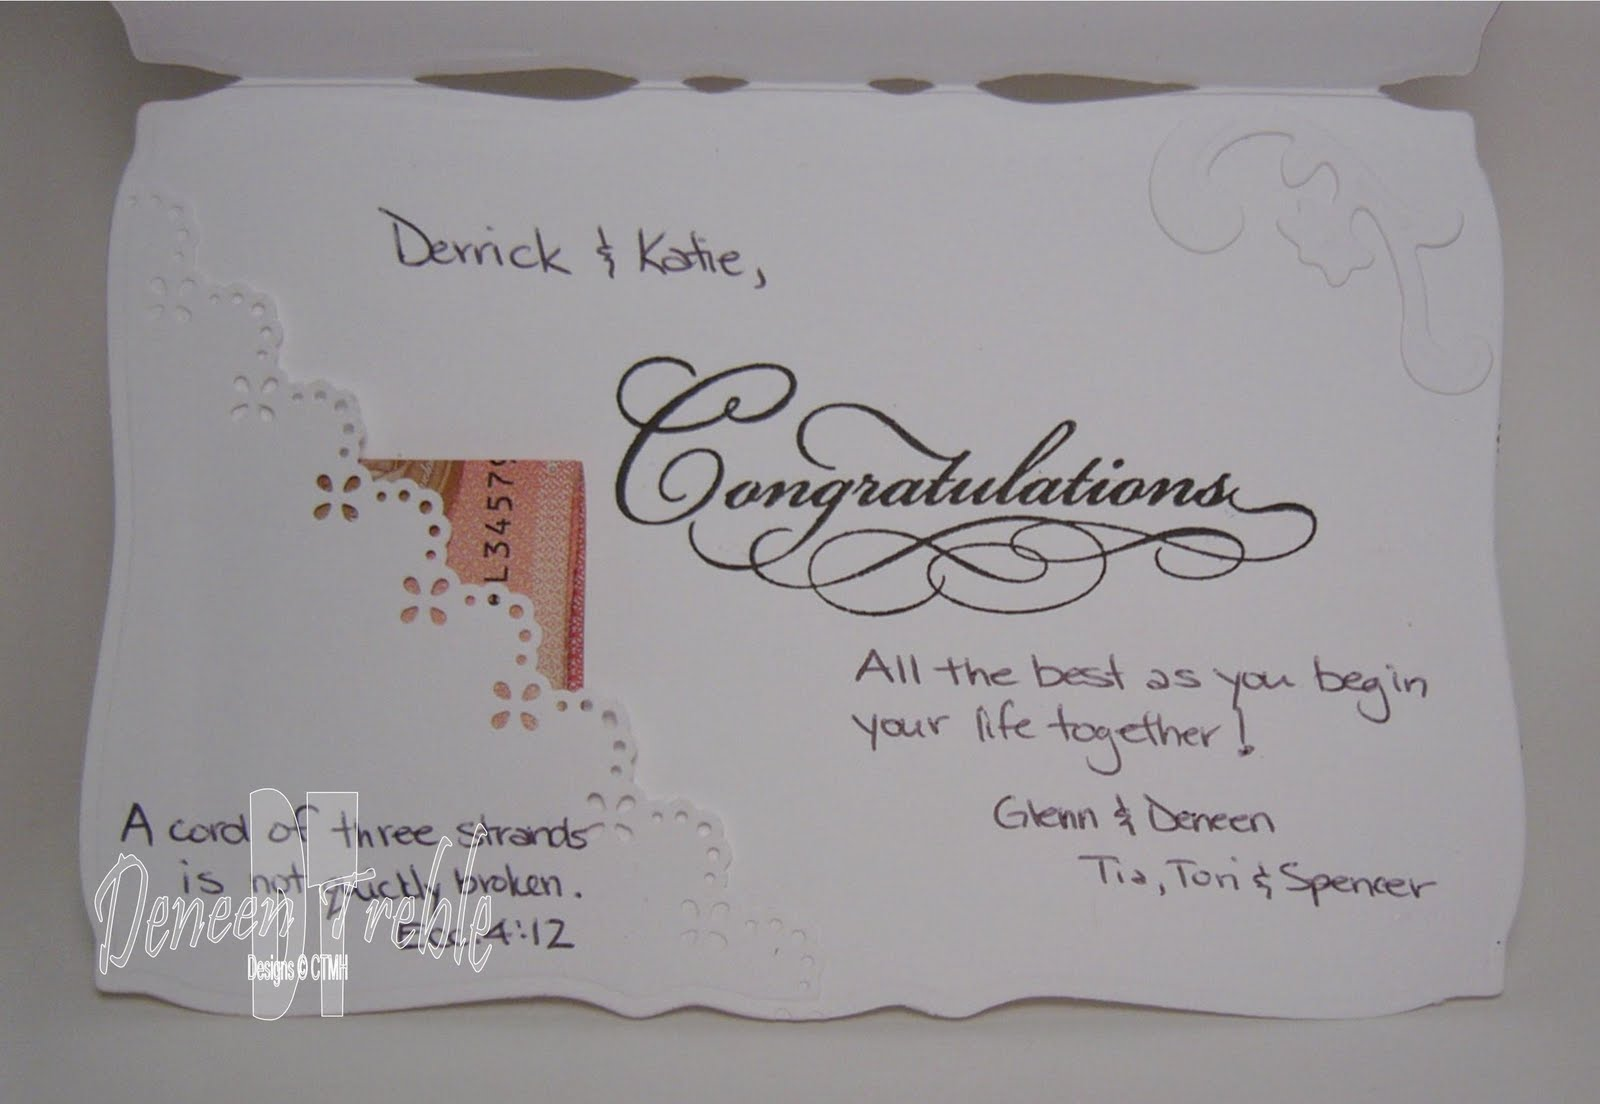 Bridal Shower Card Messages Religious Wedding Invitation Sample – Wedding Gift Cards Messages